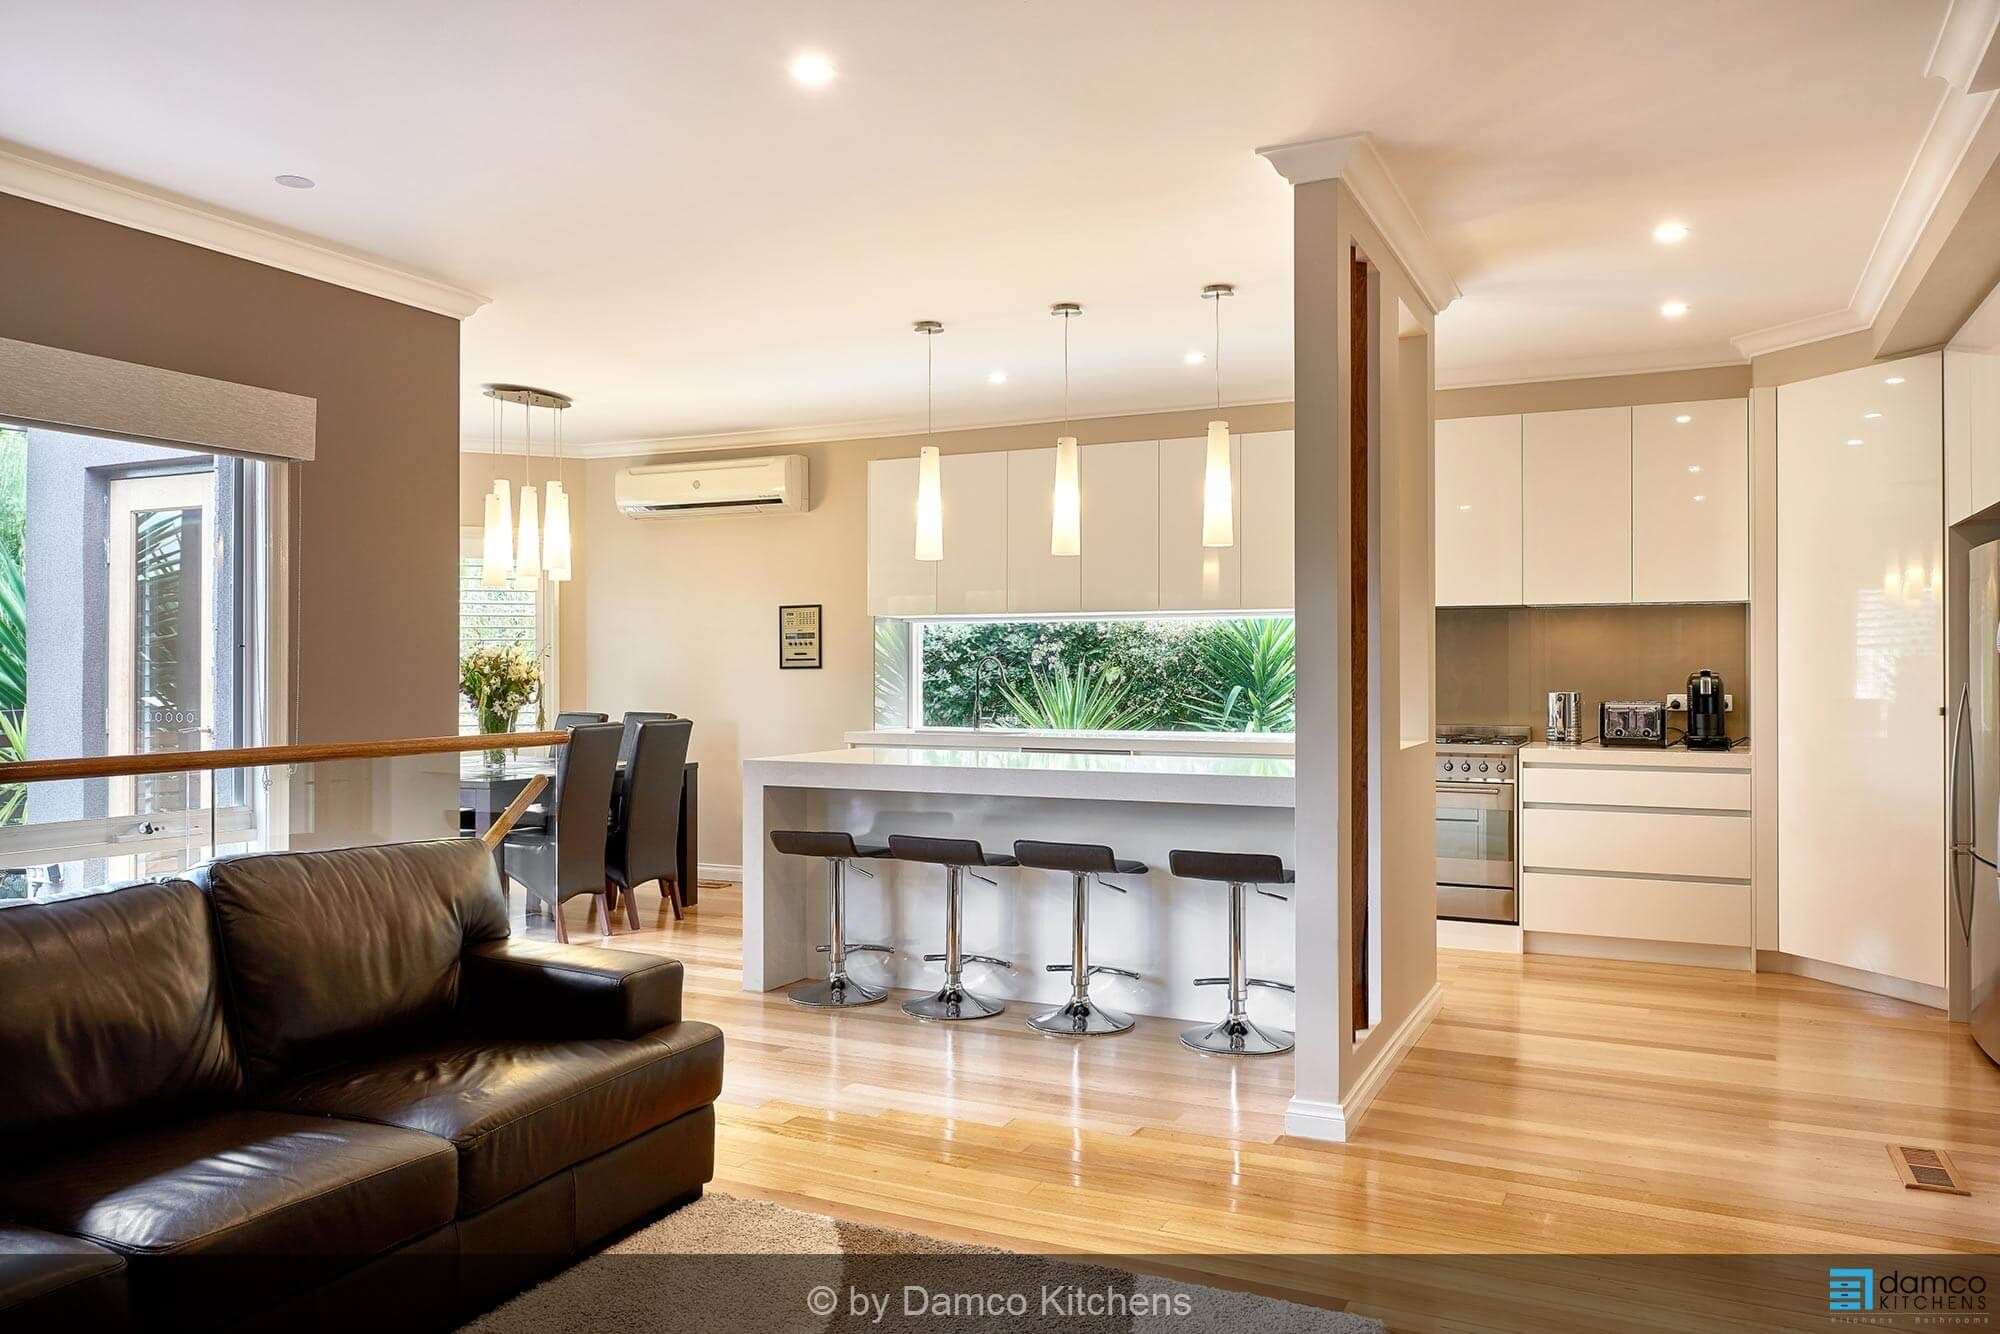 Custom Kitchen Designer Glamorous Damco Kitchens In Melbourne Is An Award Winning Modern Kitchen Inspiration